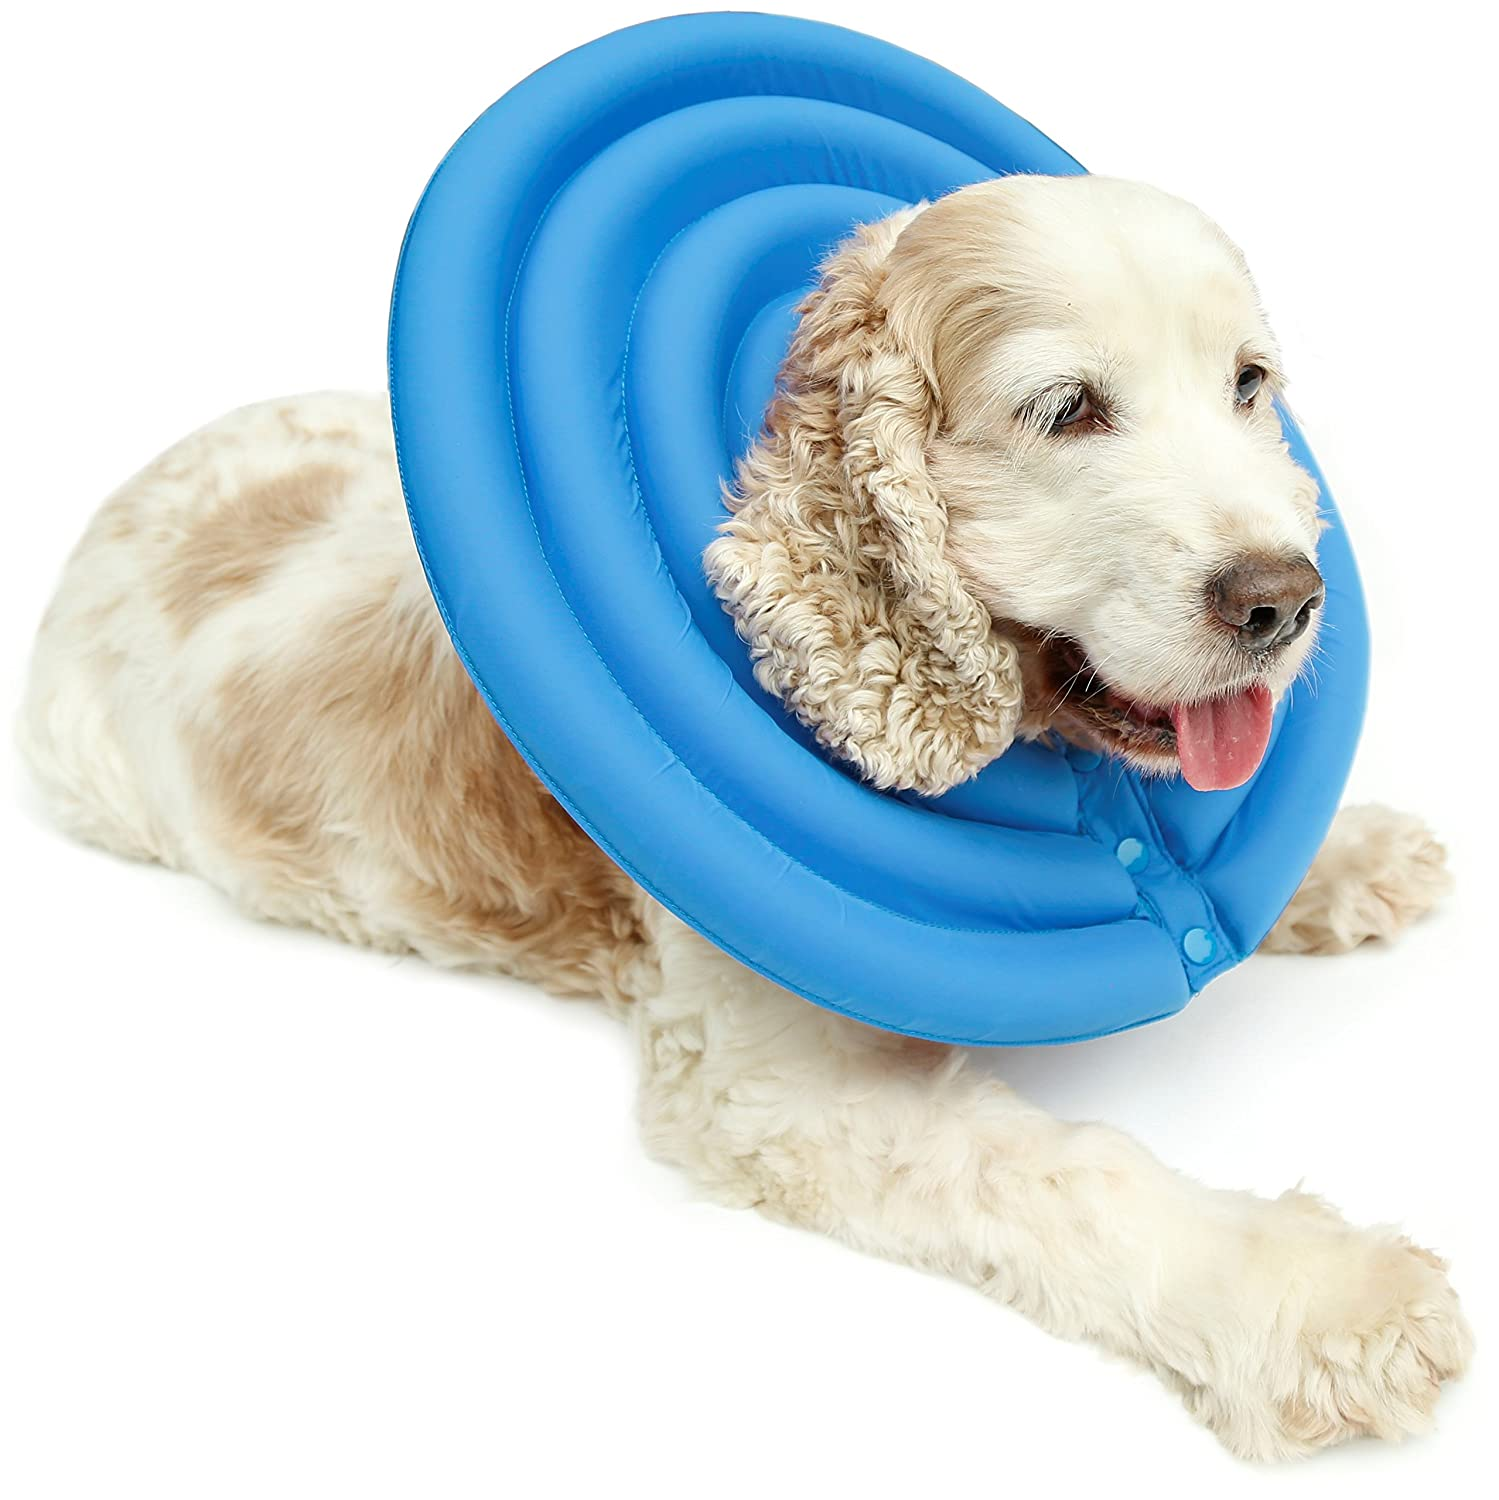 bluee S bluee S UsefulThingy Dog Recovery Collar Soft Comfy Cone E-Collar After Surgery, Anti-Bite Lick for Cats Too, Quicker Healing 4 Sizes, 2 colors (S, bluee)